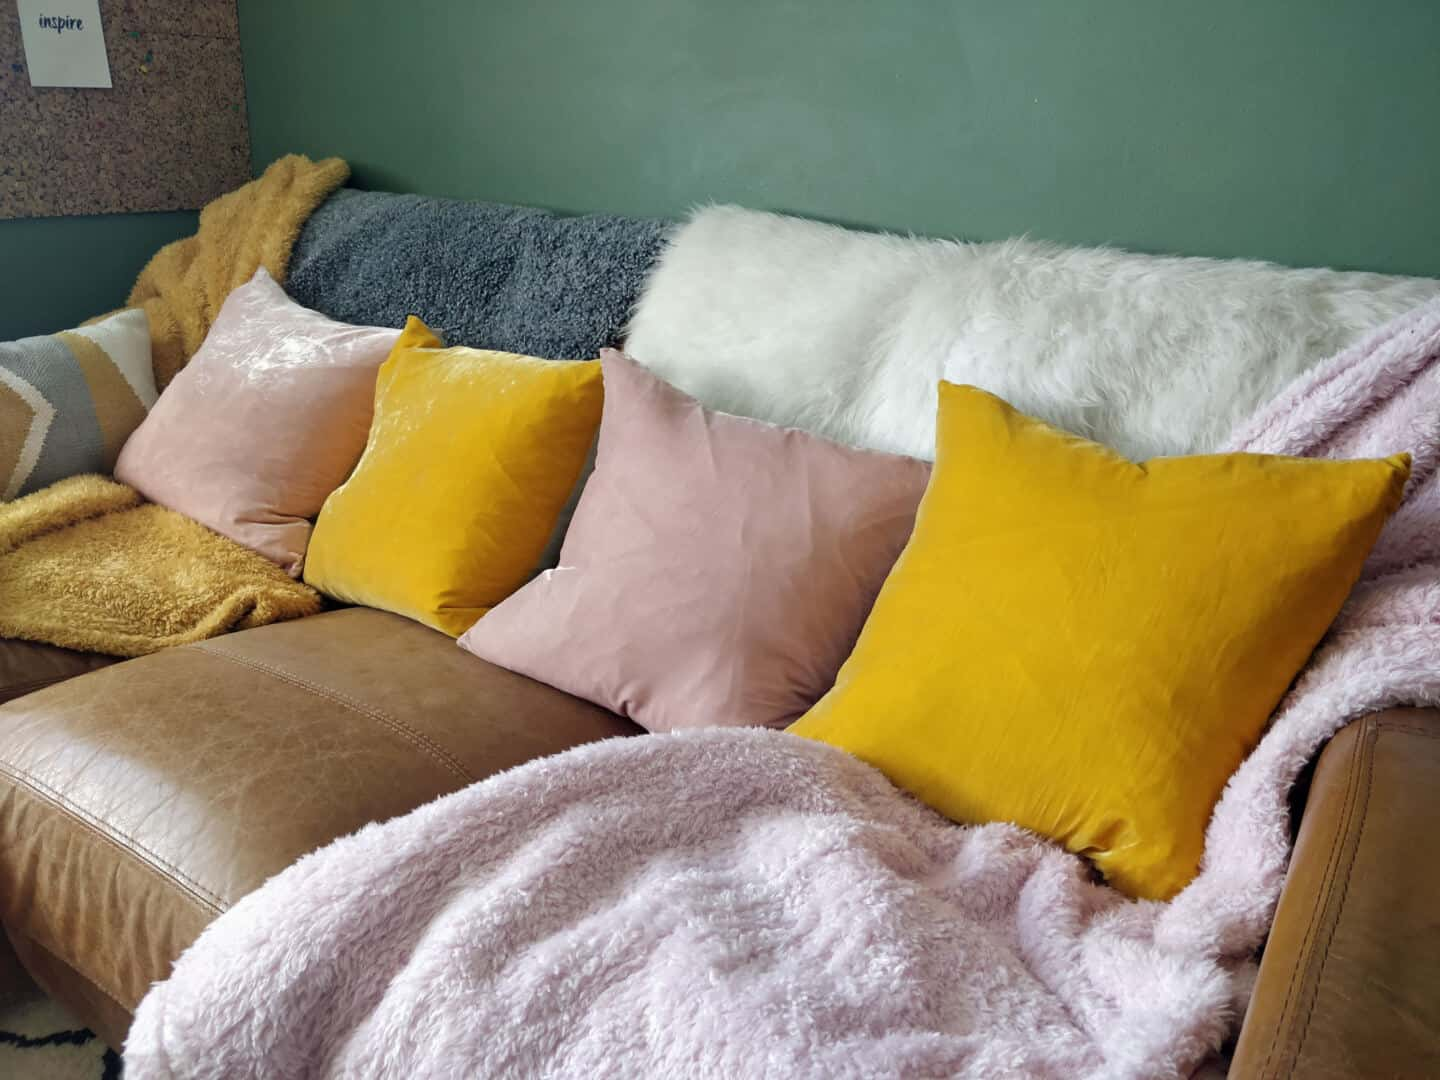 Autumn home updates with Habitat. A living room featuring a brown leather sofa and pink and yellow velvet cushions.